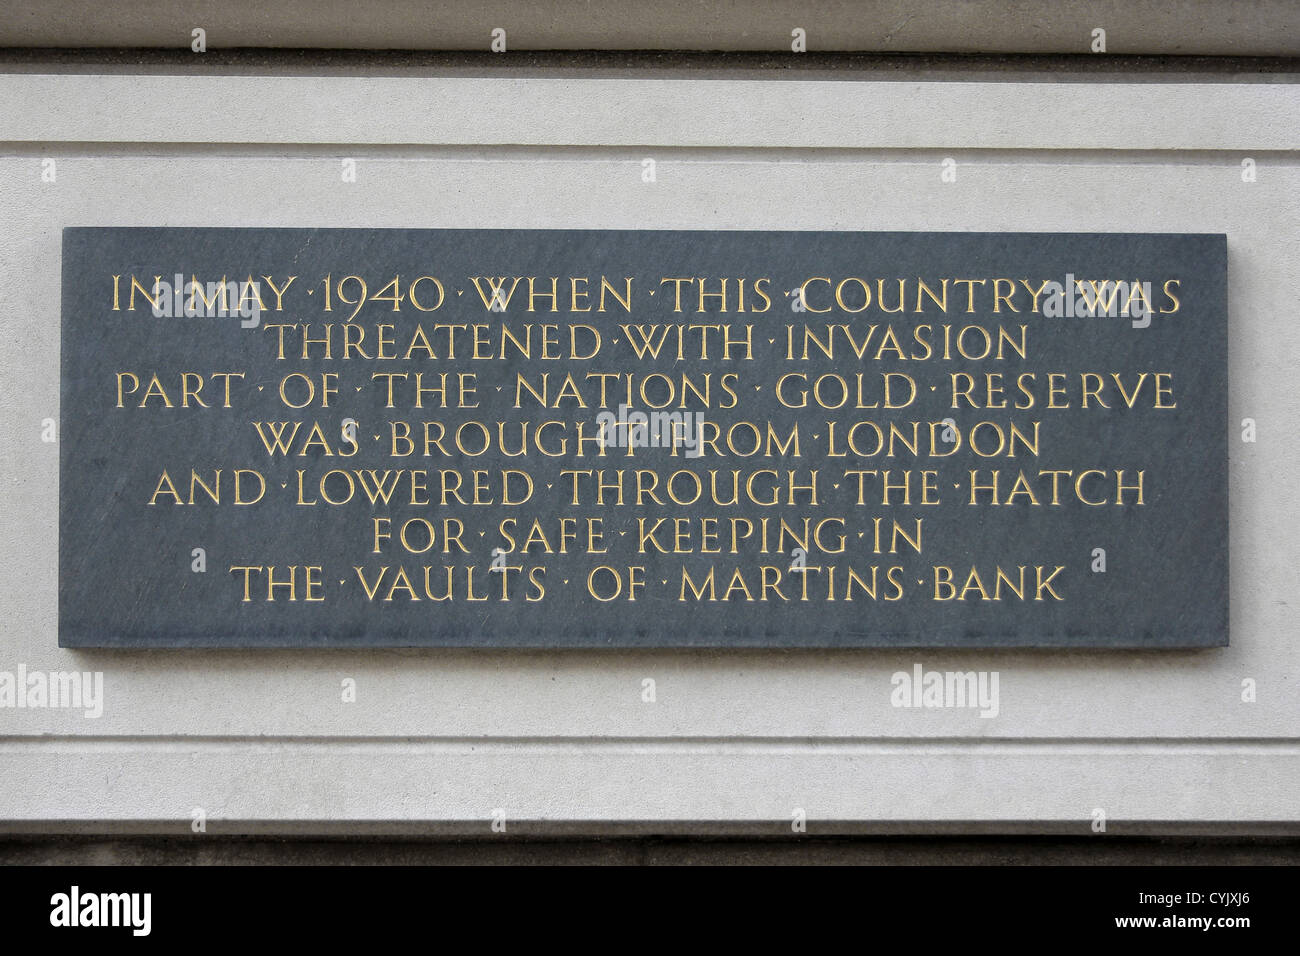 Sign Detailing the Role Of Martins Bank In Safe-guarding The UK's Gold Reserve During The Second World War - Stock Image